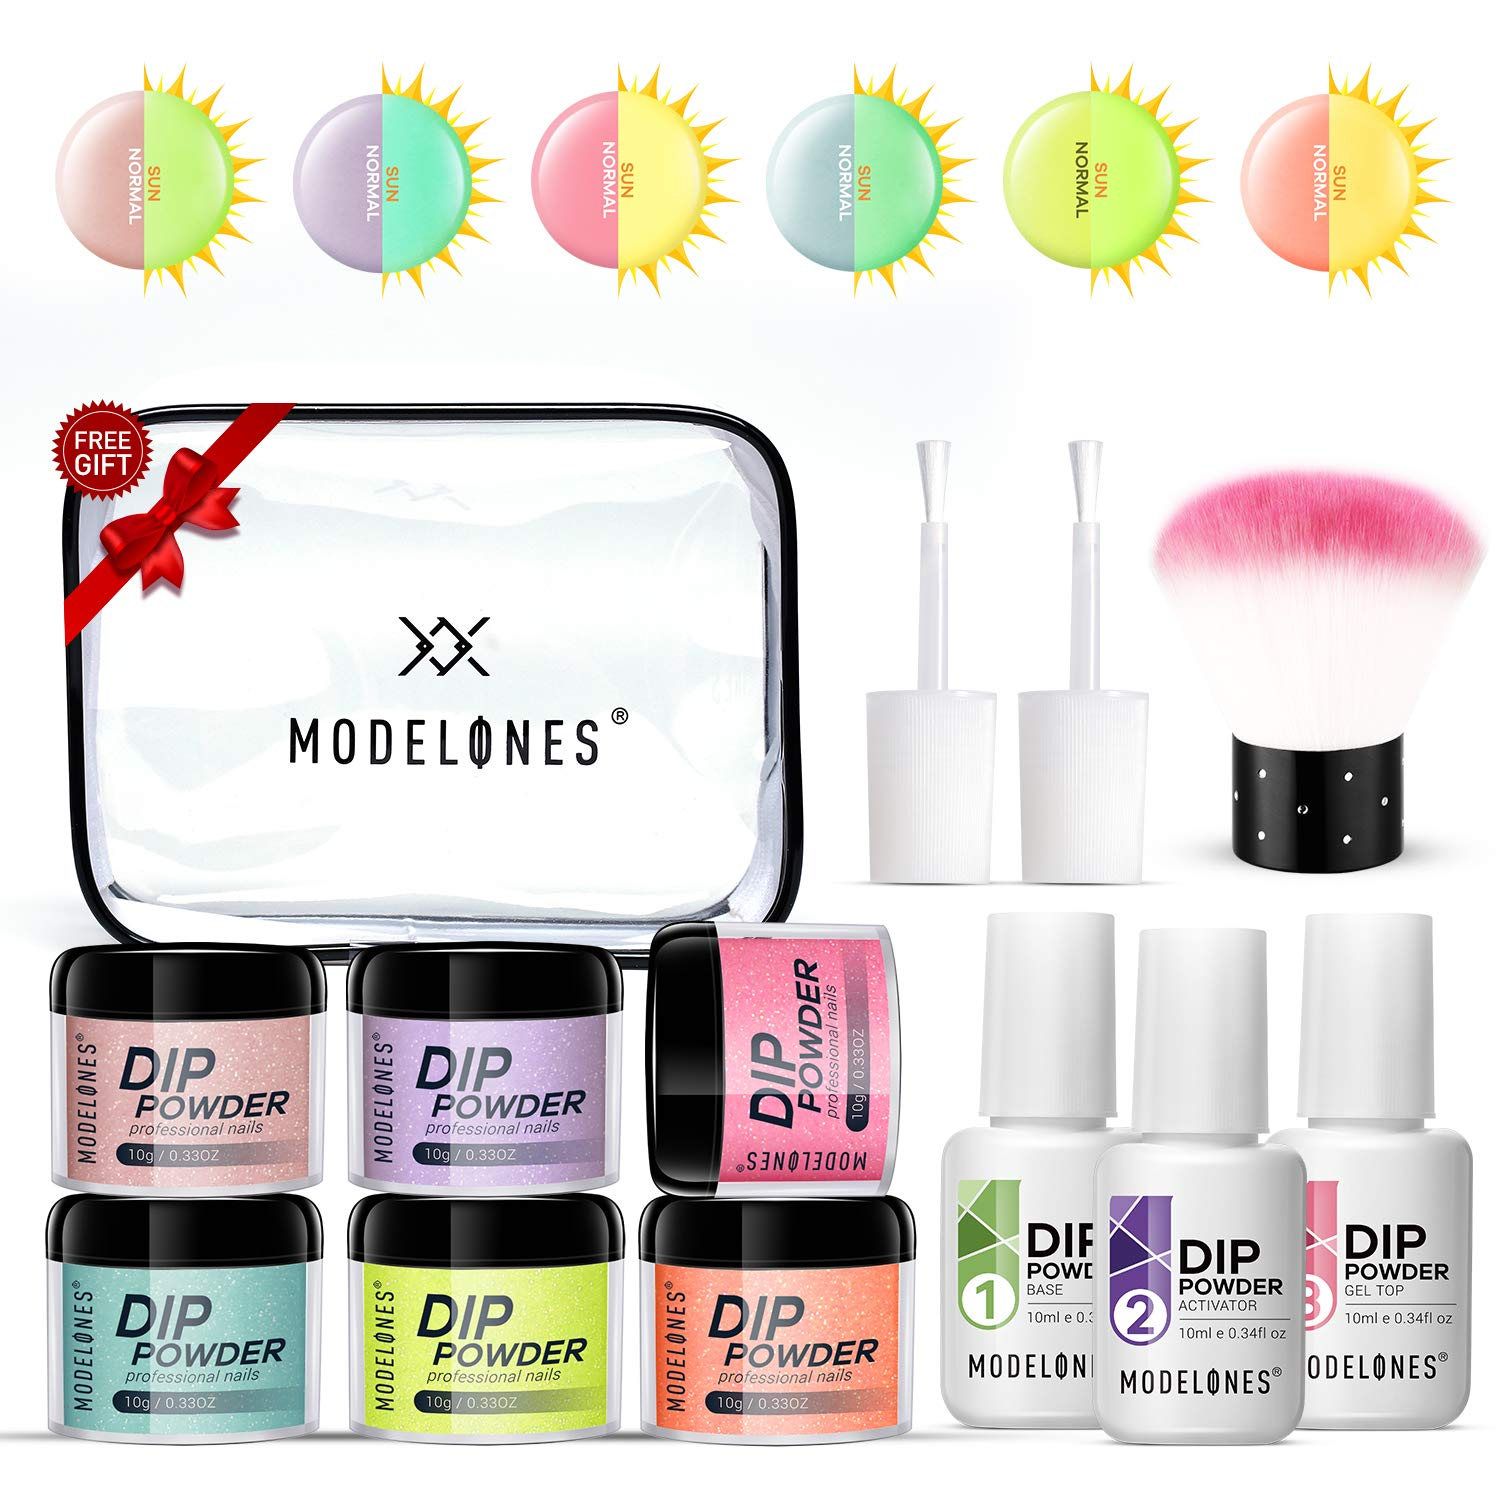 Dipping Powder Nail Starter Kit 6 Colors,Fluorescent Dip Powder System Starter Nail Kit Luminous Acrylic Dipping System for French Nail Manicure nail art Set Essential kit,Portable Kit for Travel by modelones